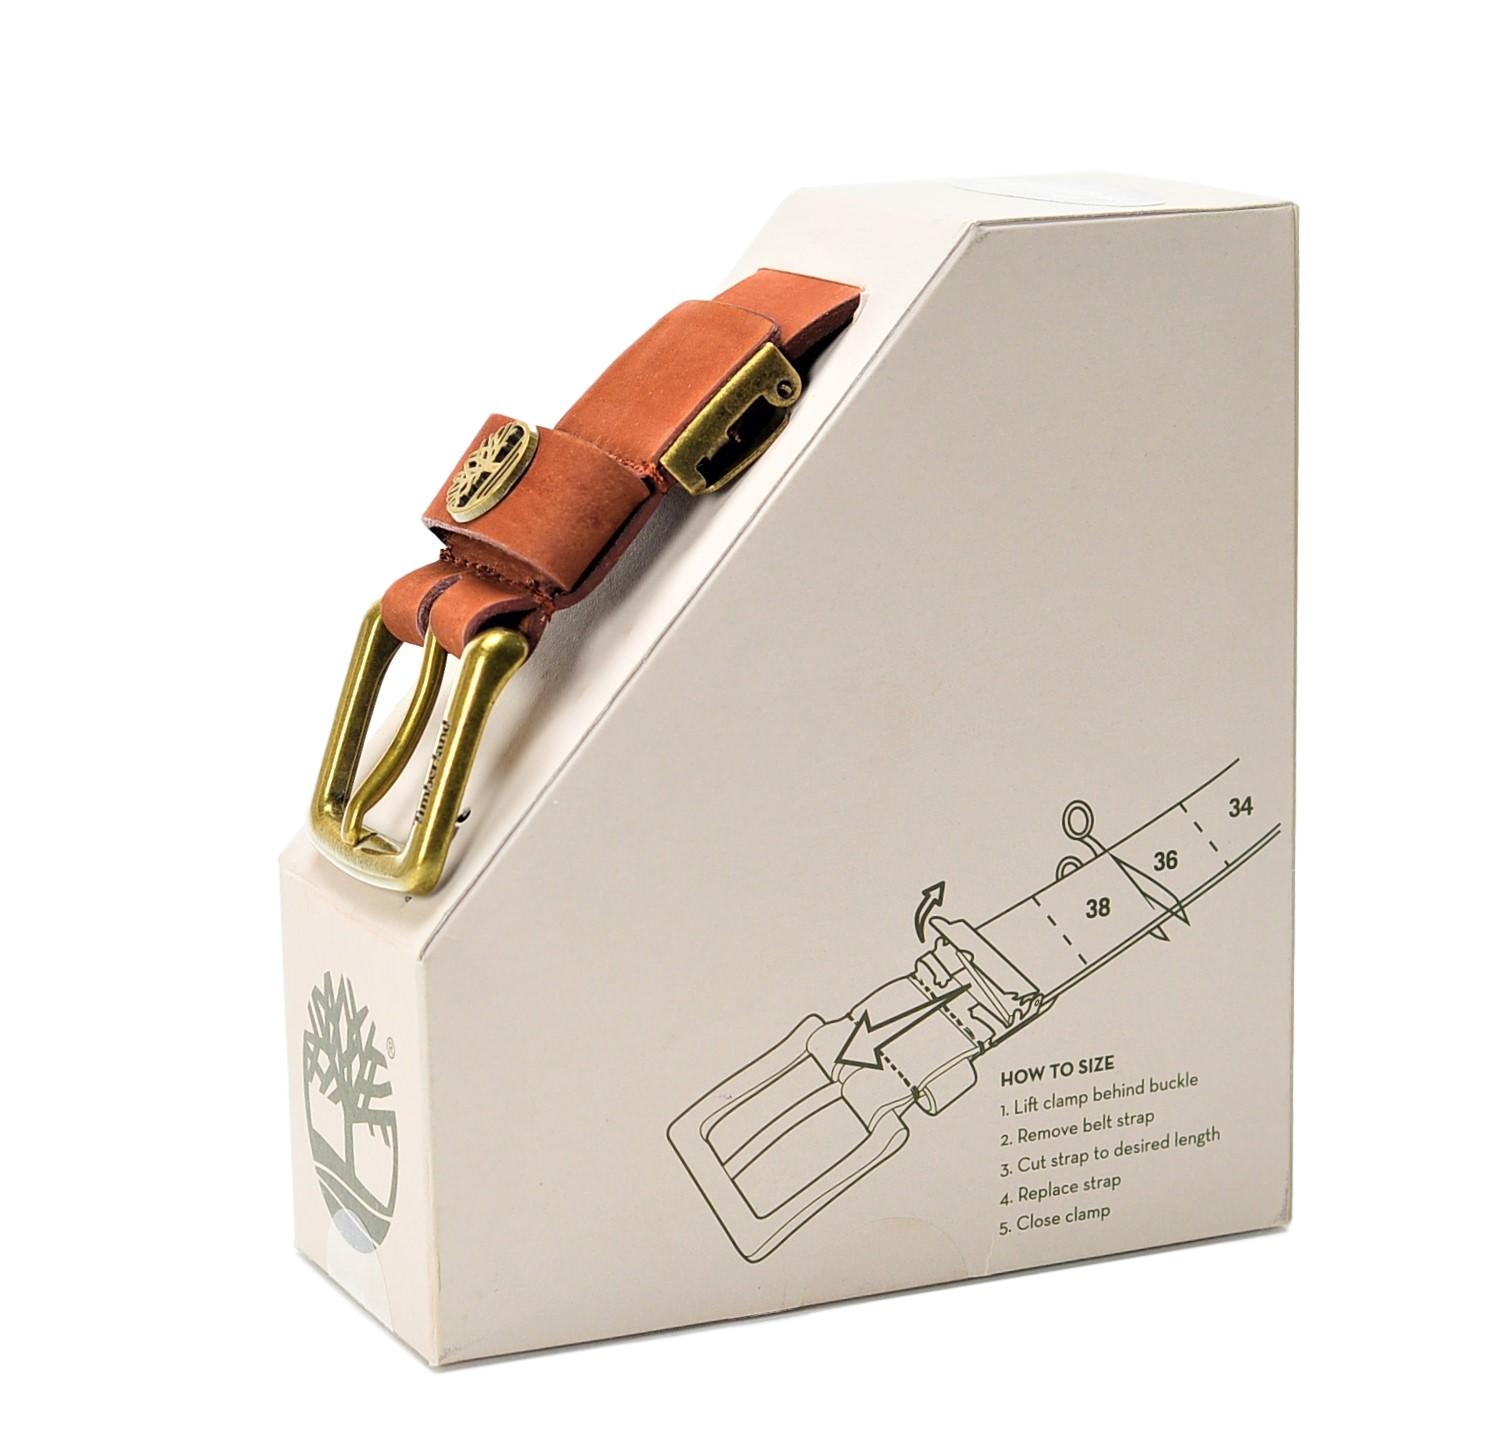 Timberland-Men-039-s-40-MM-Cut-To-Fit-Boxed-Leather-Belt thumbnail 16